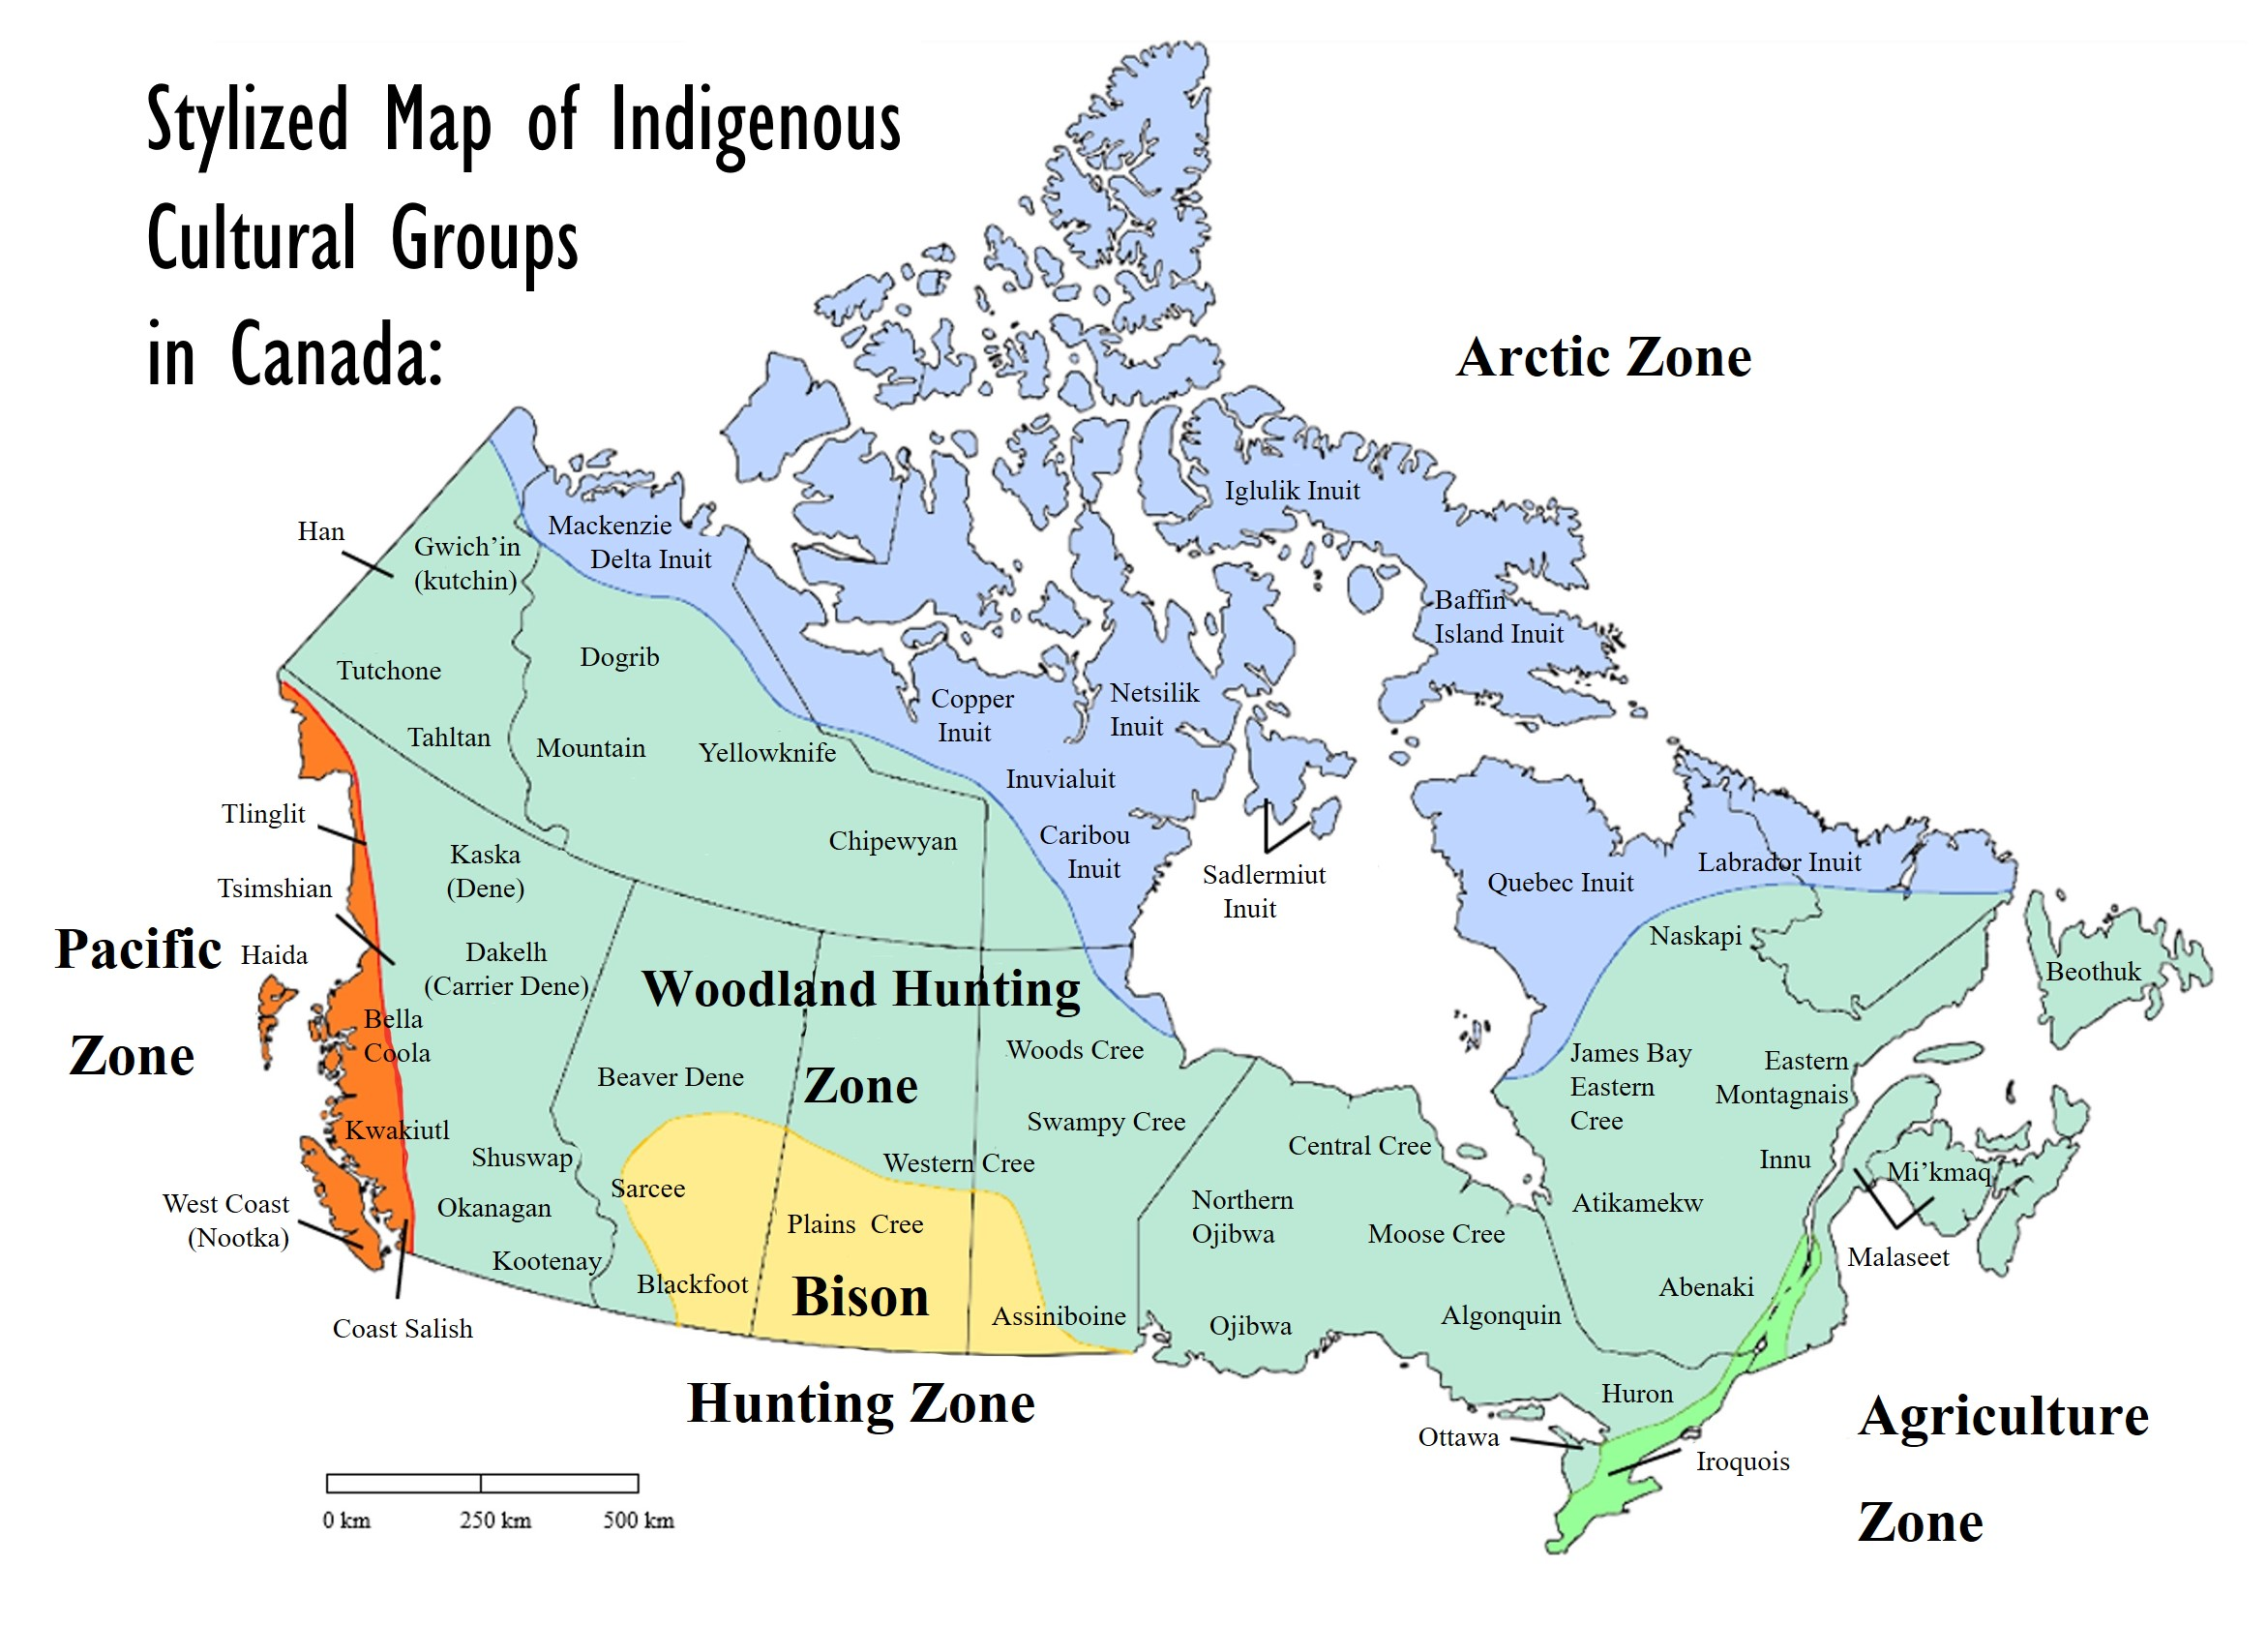 """Stylized Map of Indigenous Cultural Groups in Canada. Created for the Open Text """"Economic Aspect of the Indigenous Experience in Canada"""" by Dr. Anya Hageman 2020 . Map graphic by: Pauline Galoustian. [19]"""